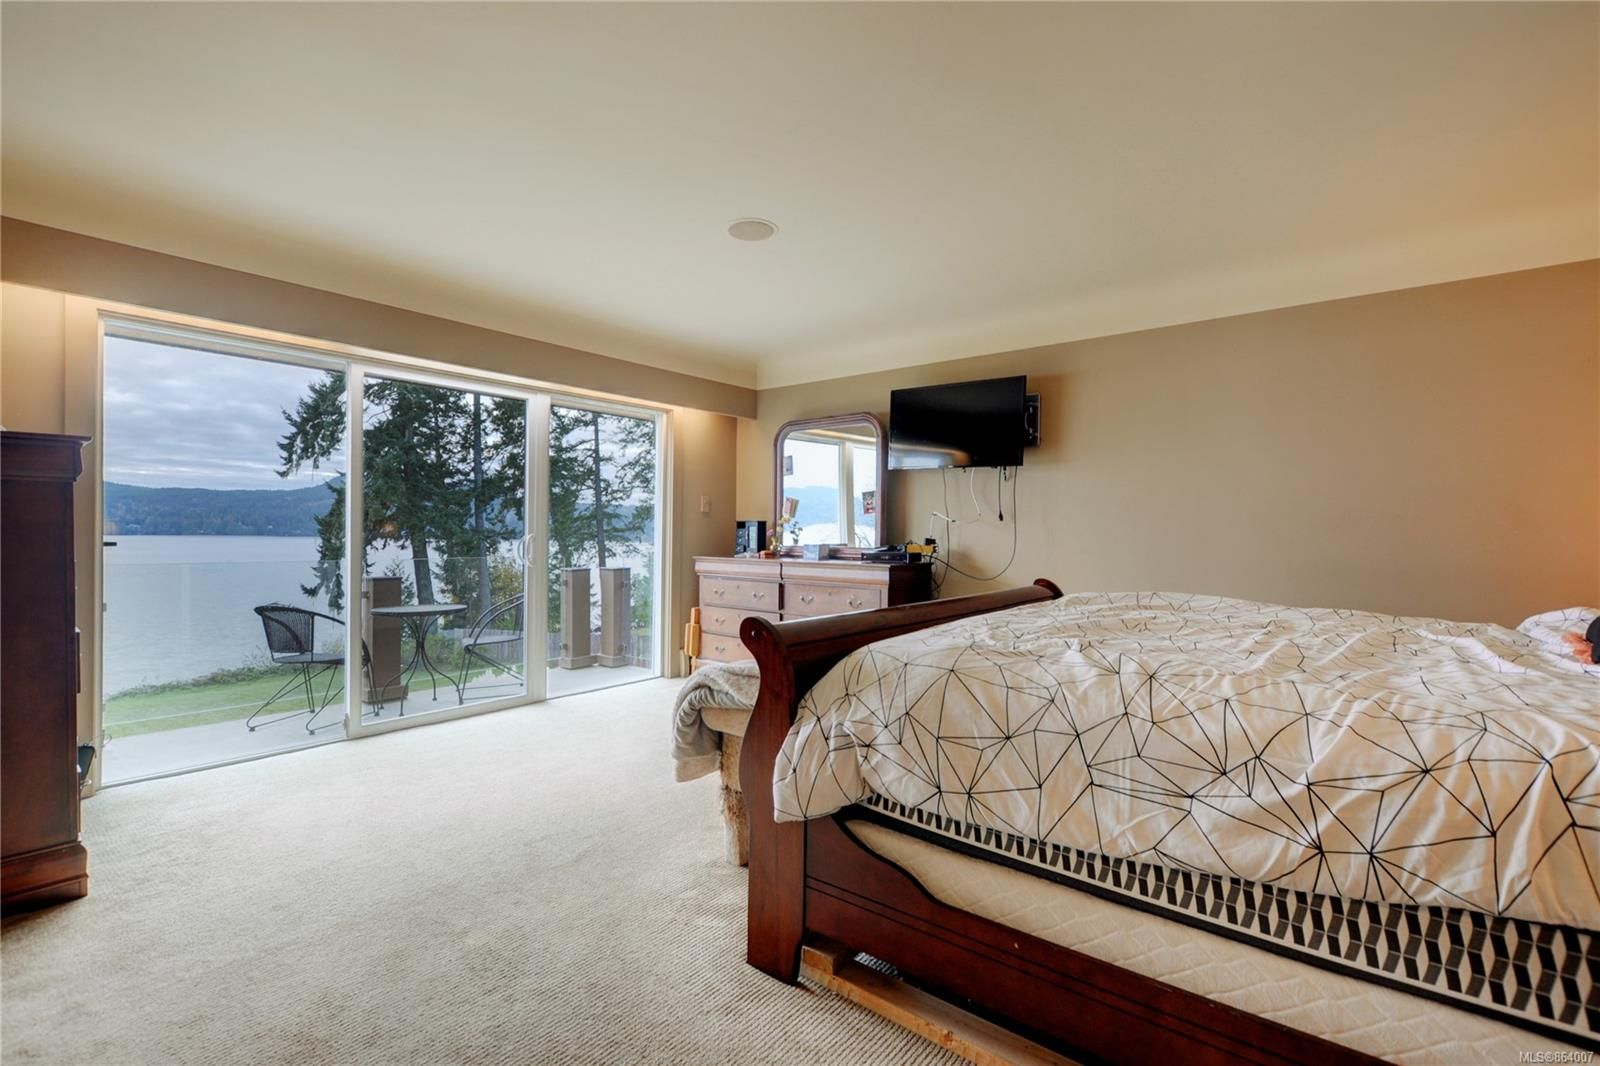 Photo 13: Photos: 5697 Sooke Rd in : Sk Saseenos House for sale (Sooke)  : MLS®# 864007